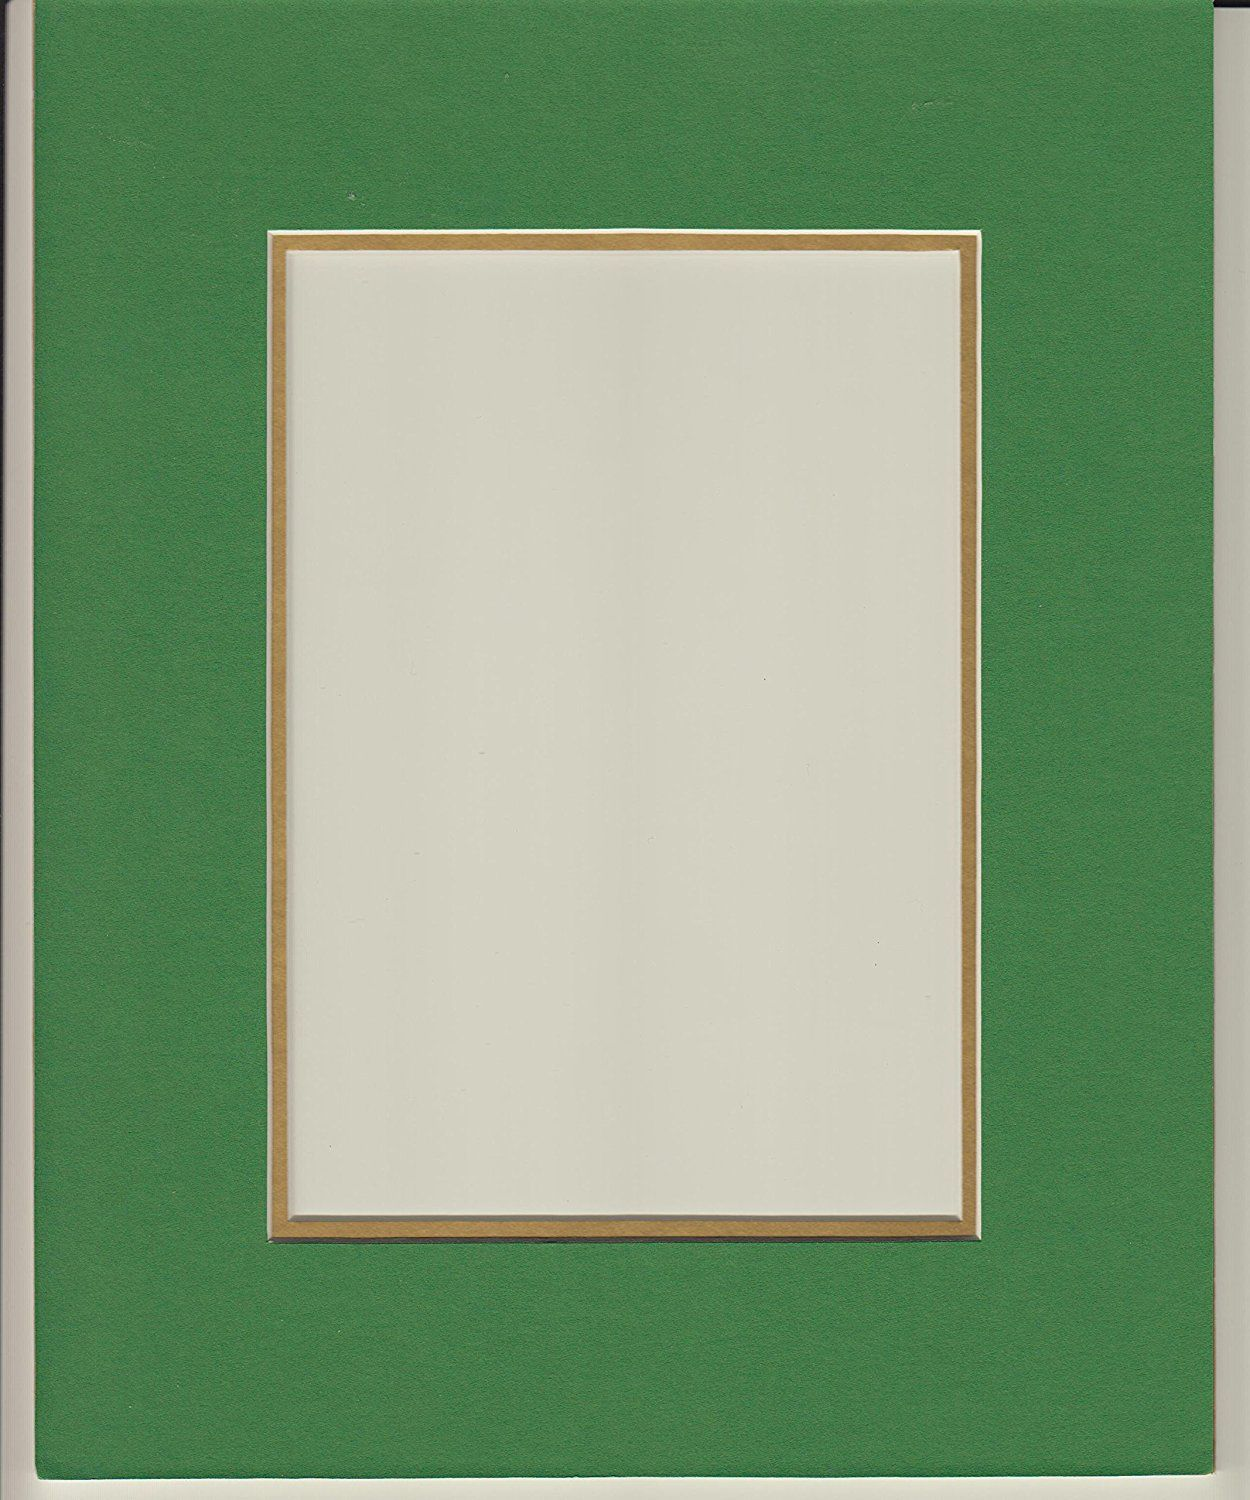 16x20 Bright Green Pictureframes Matting Pictures Double Picture Picture Framing Materials